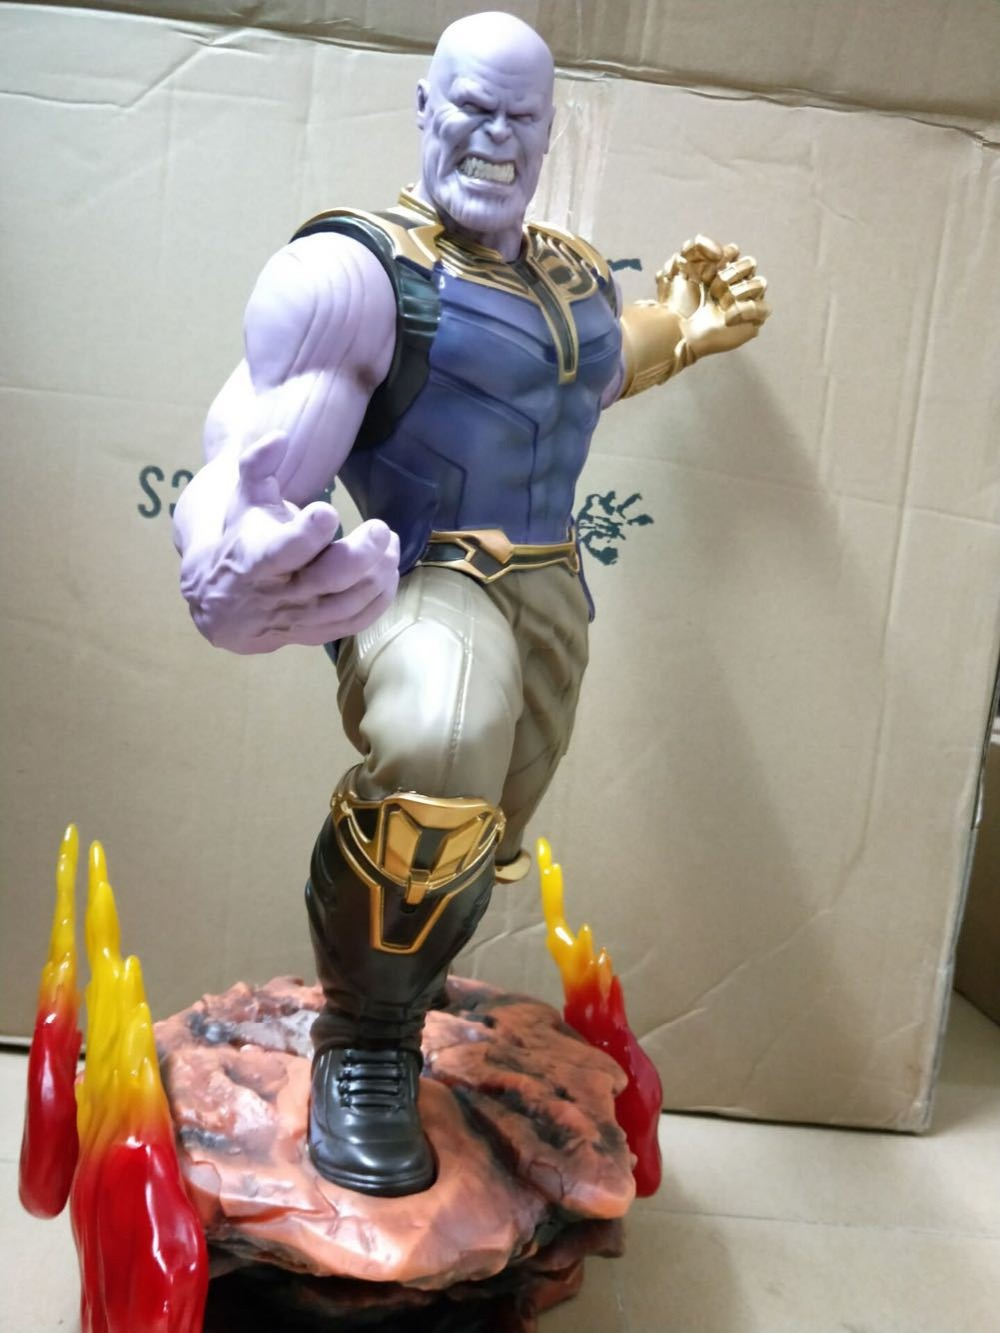 [Best] Super taille 1/4 echelle 60 cm les Avengers 3 Hulk Thanos figurine Action Statue Collection jouet enfants enfant adulte cadeau